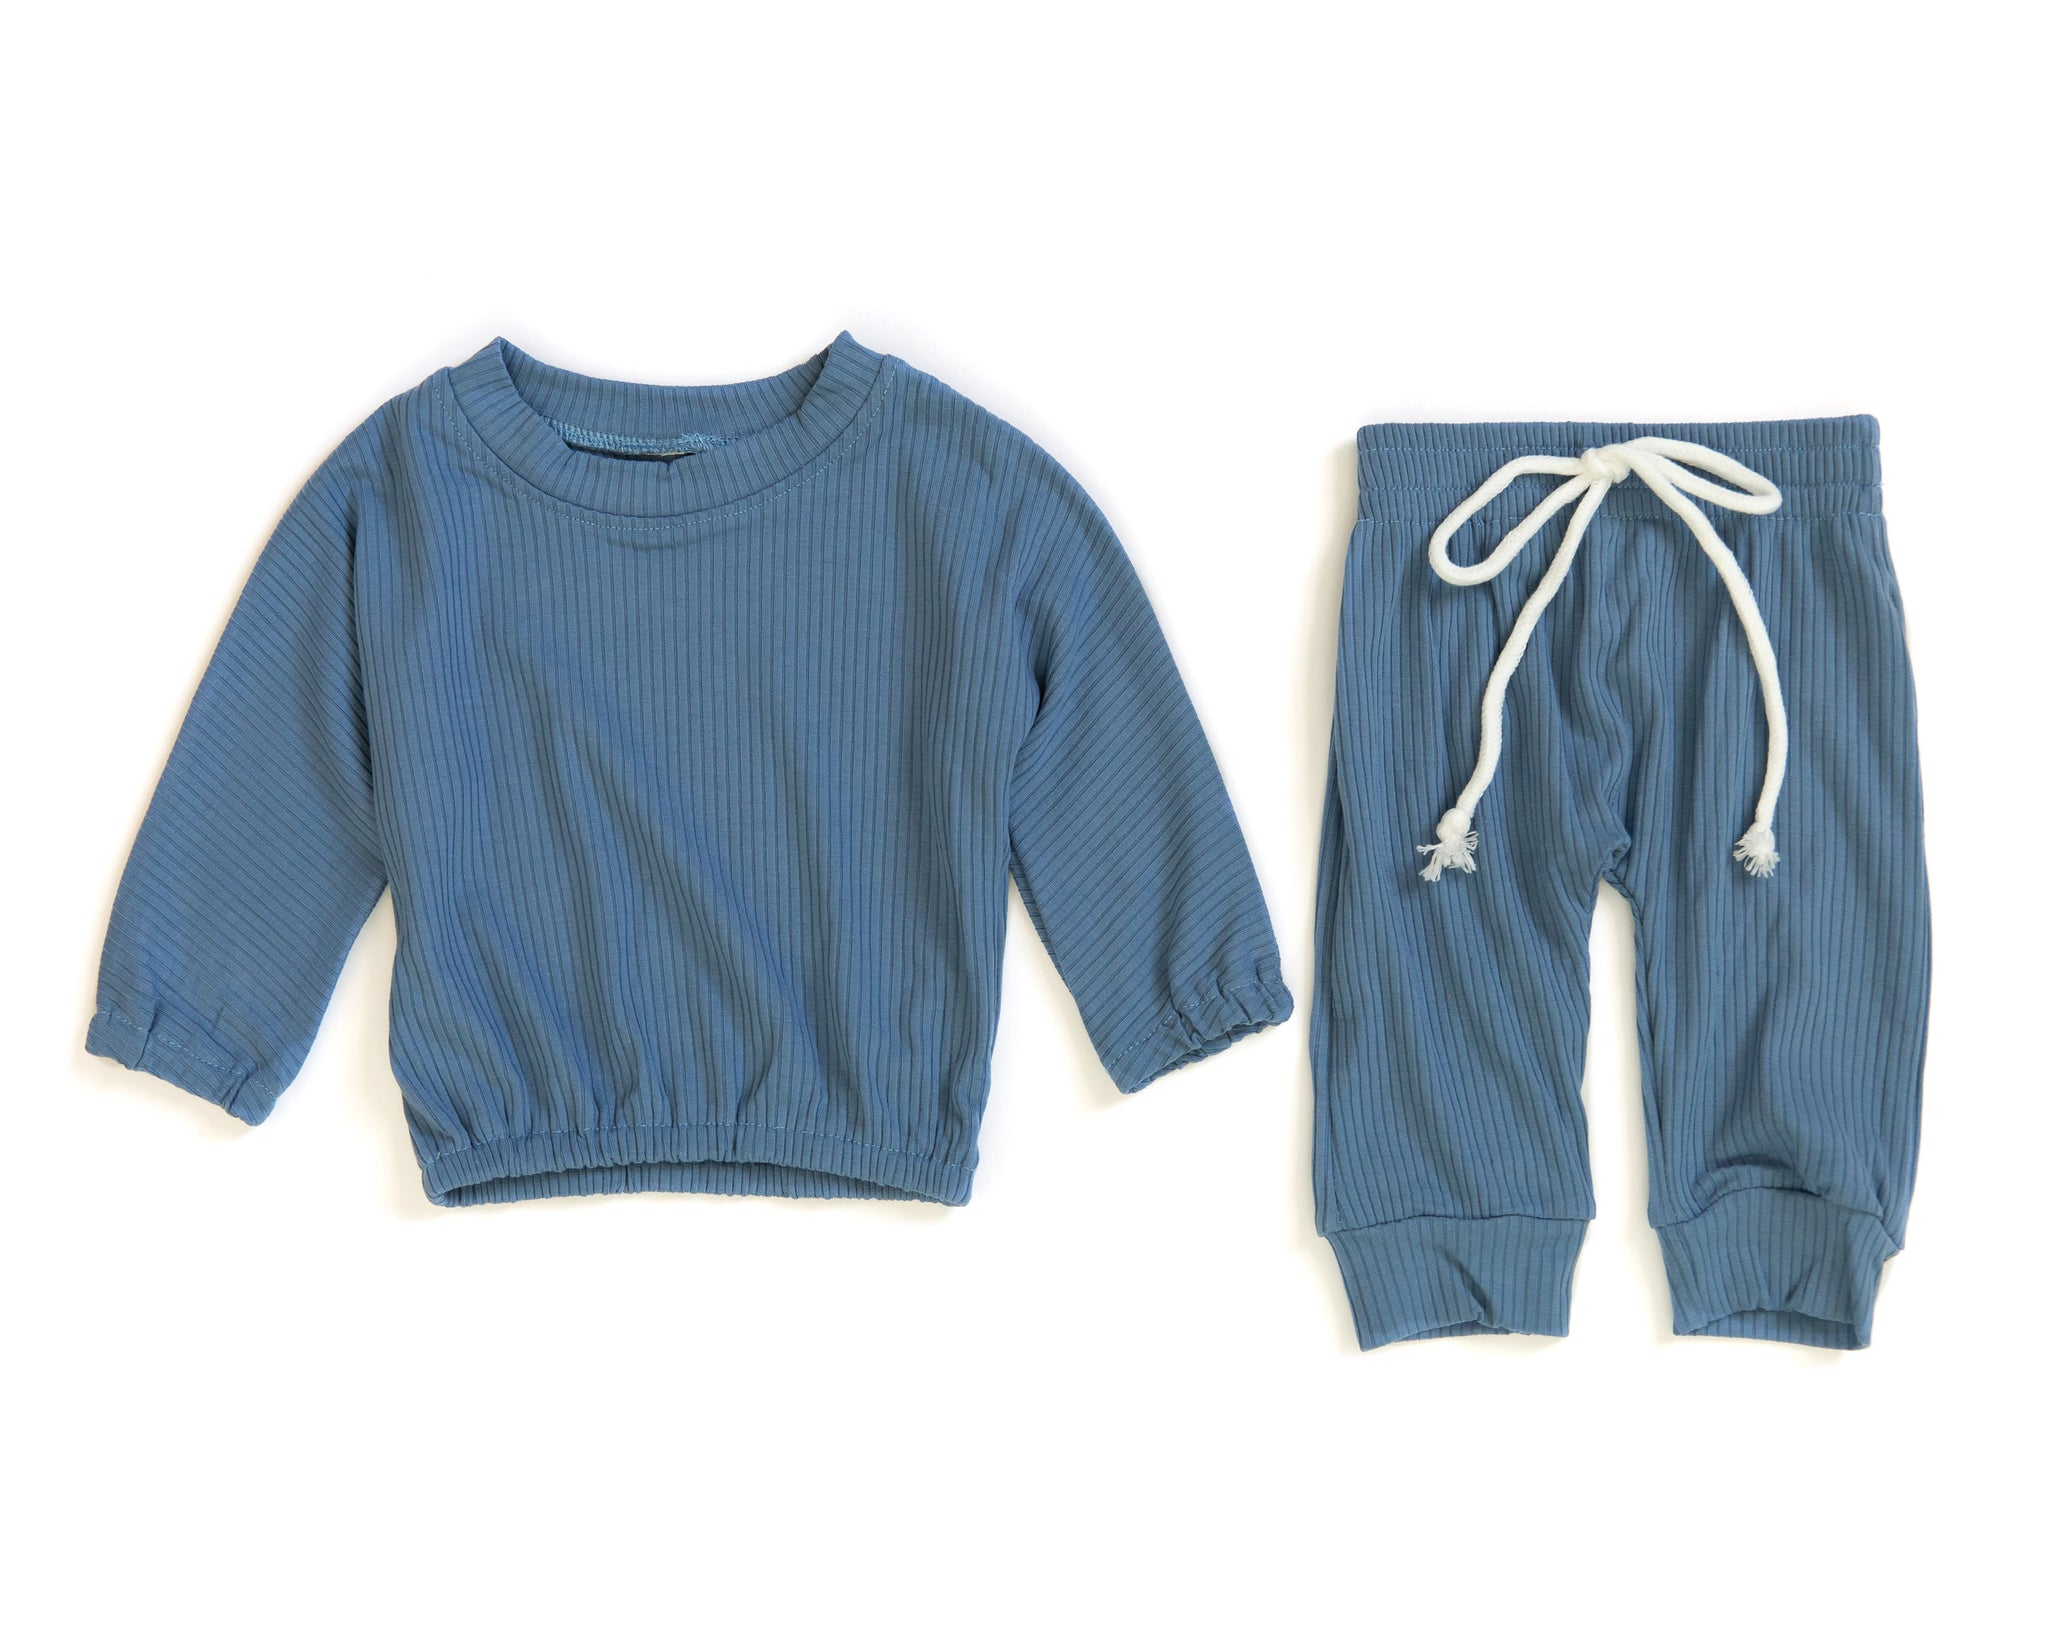 Tinley Sweater Set in Blue - Reverie Threads